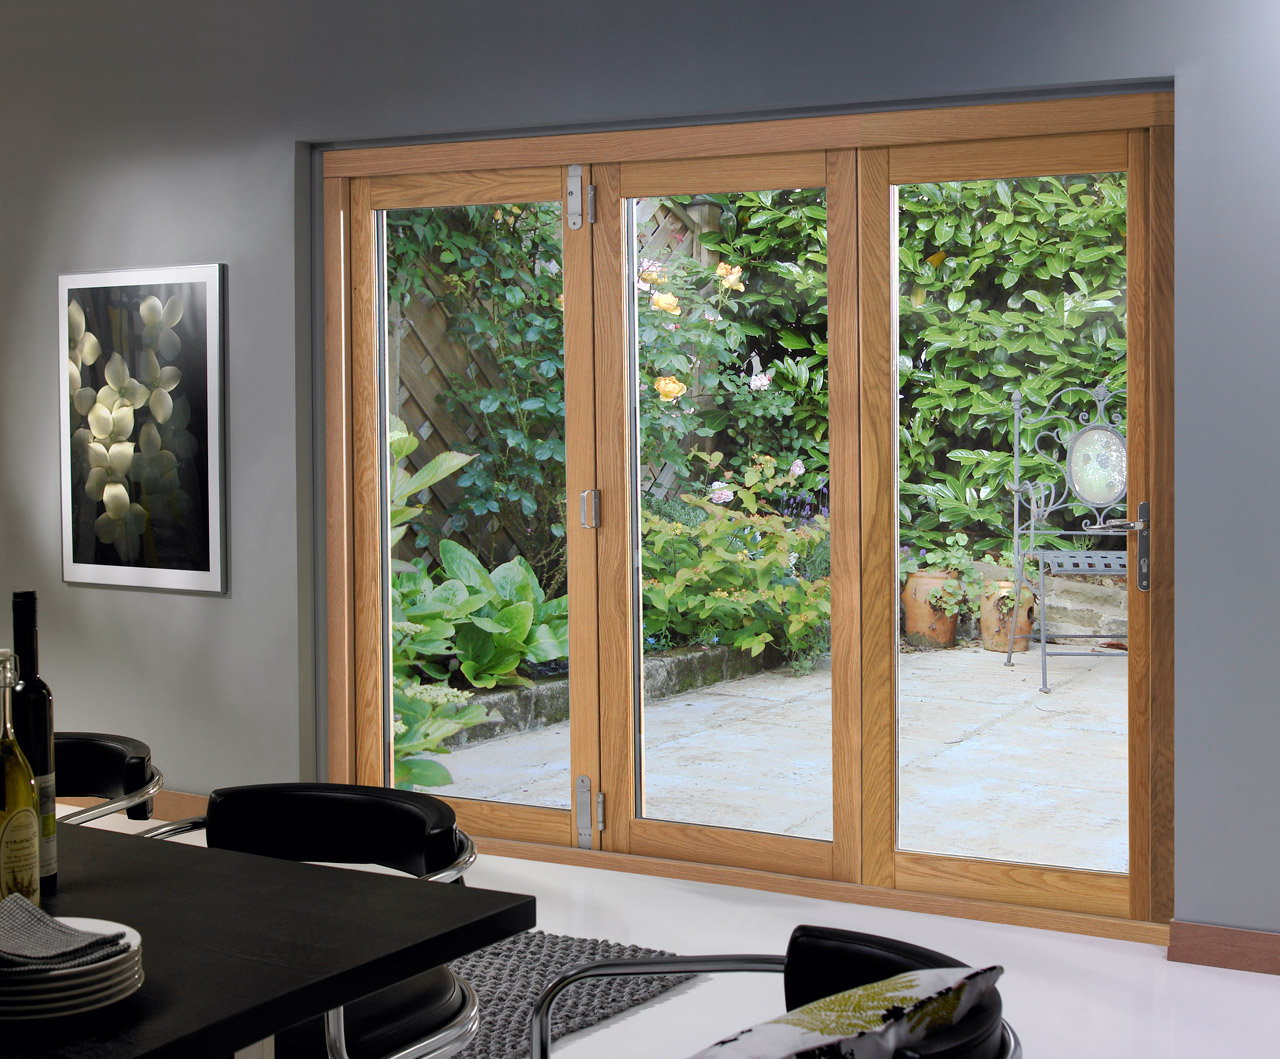 22 facts to know about 8 foot french doors exterior before for Interior exterior doors